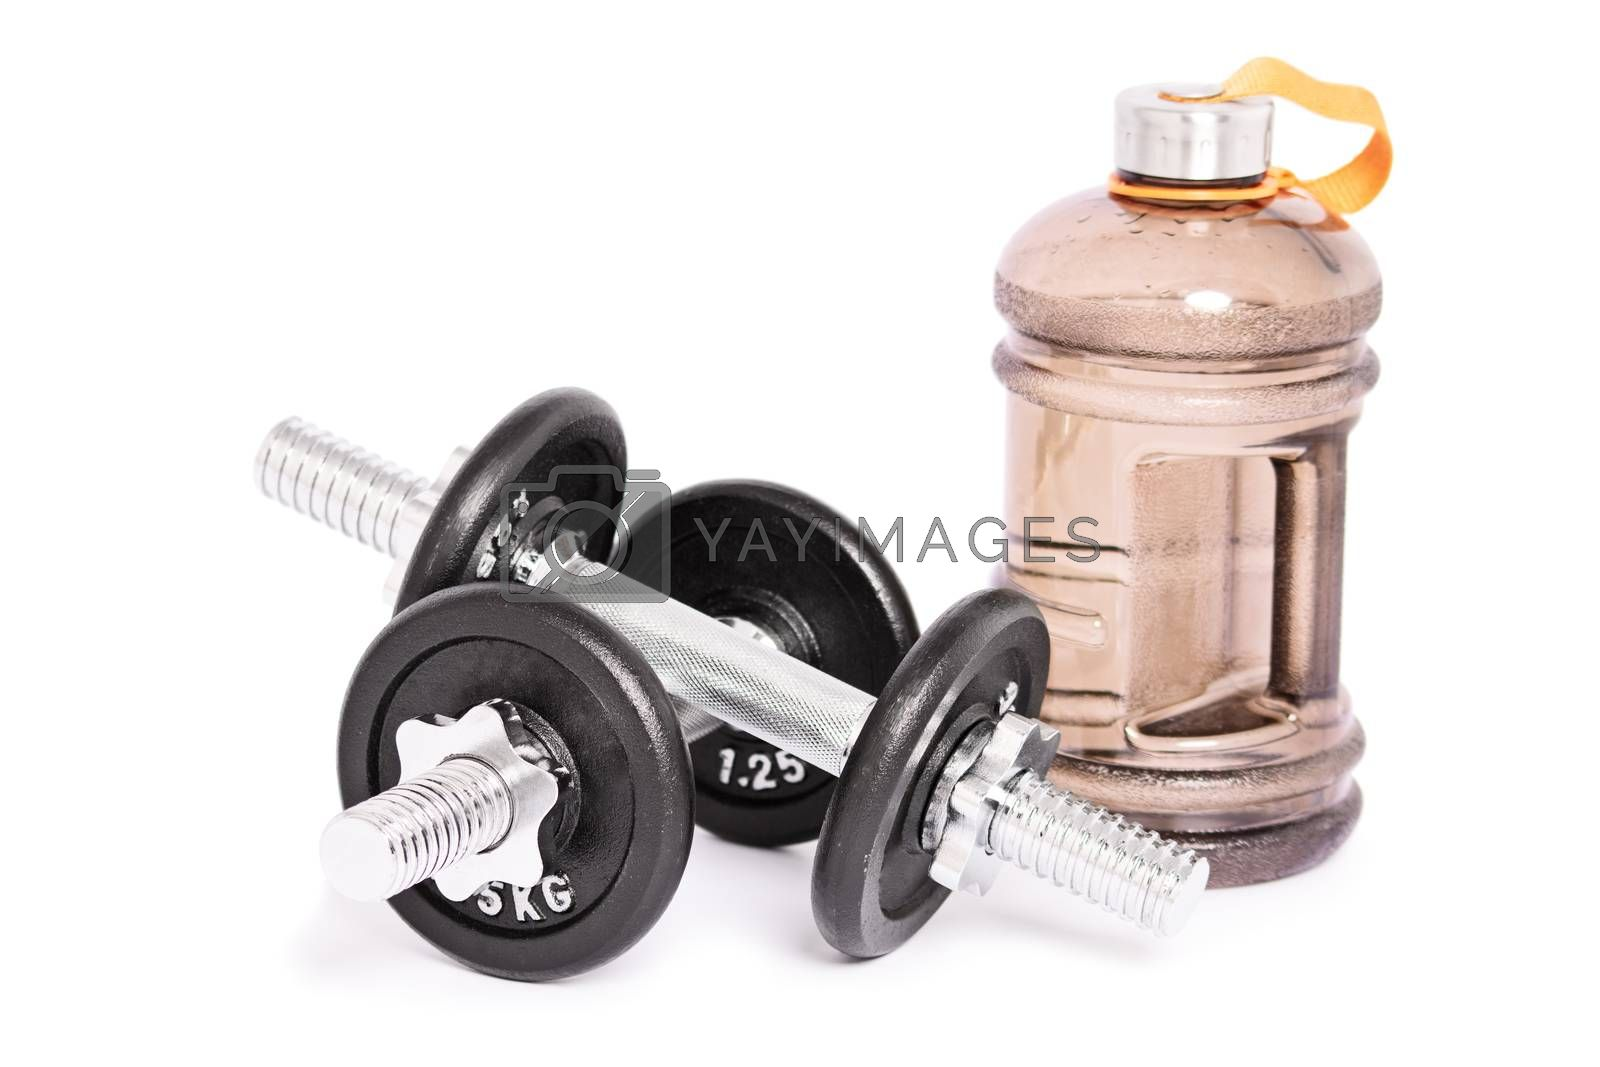 Close up shot of two stainless steel dumbbells and a large water bottle for the gym, isolated on a white background. Healthy lifestyle and fitness concept. Copy space.